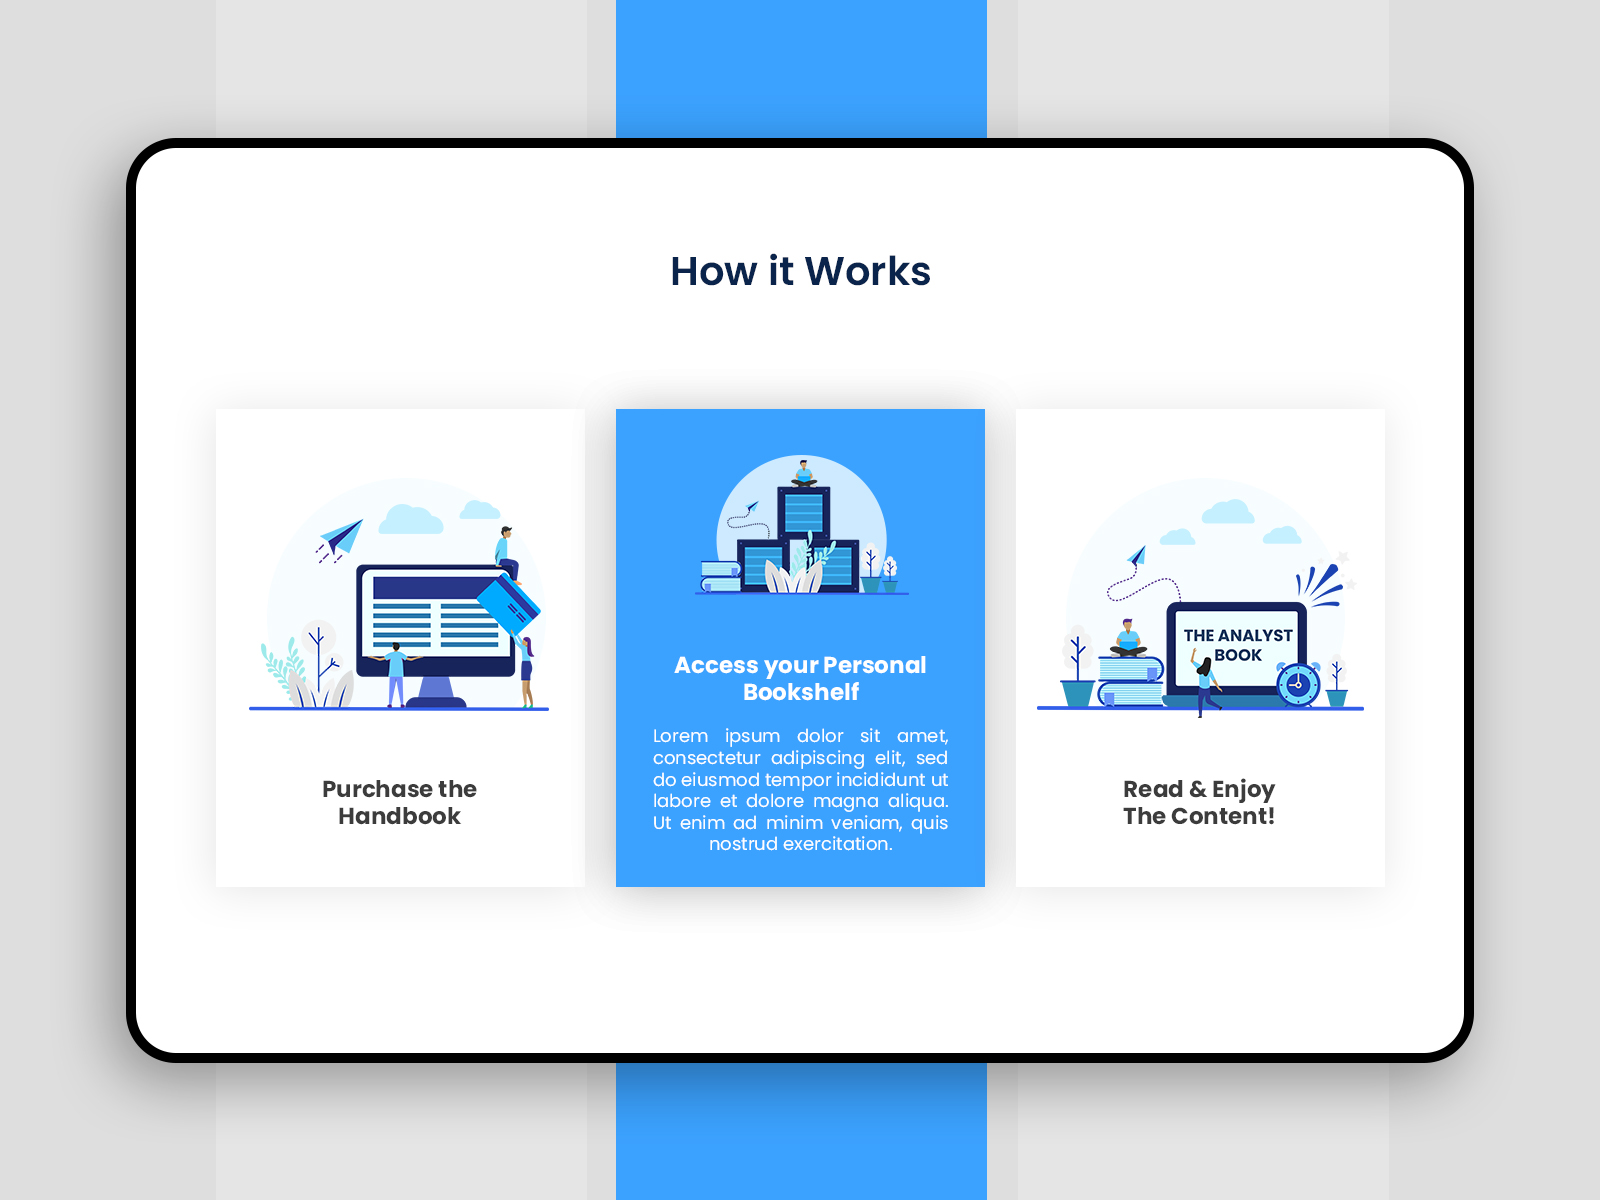 How It Works Section